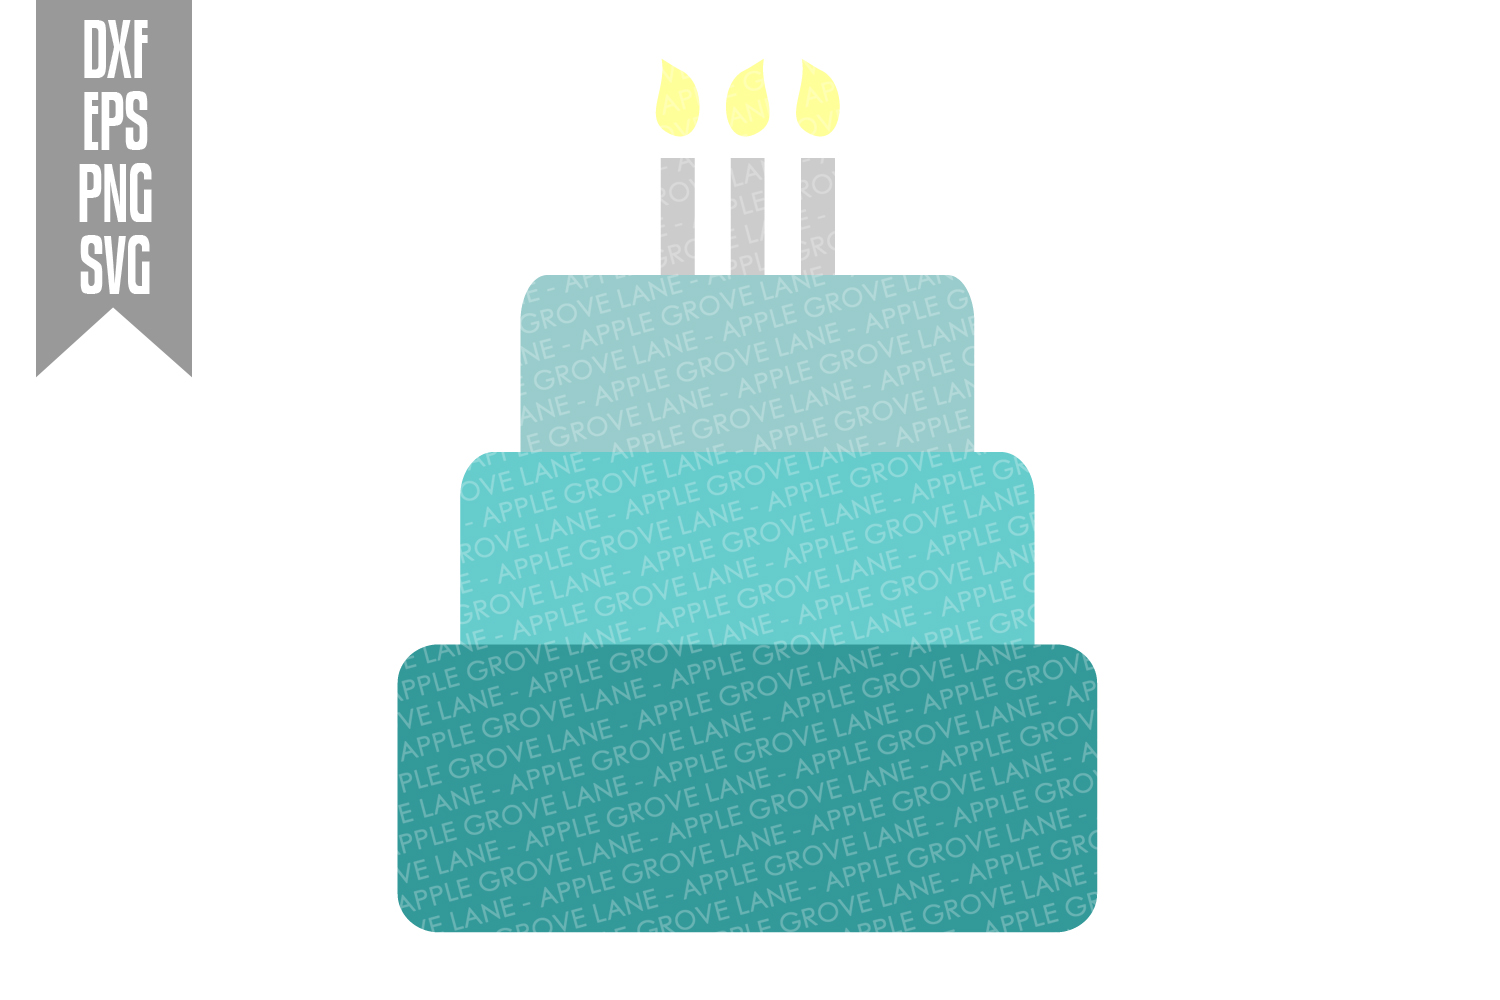 Blue Birthday Svg Bundle - 8 designs included - Svg File example image 9